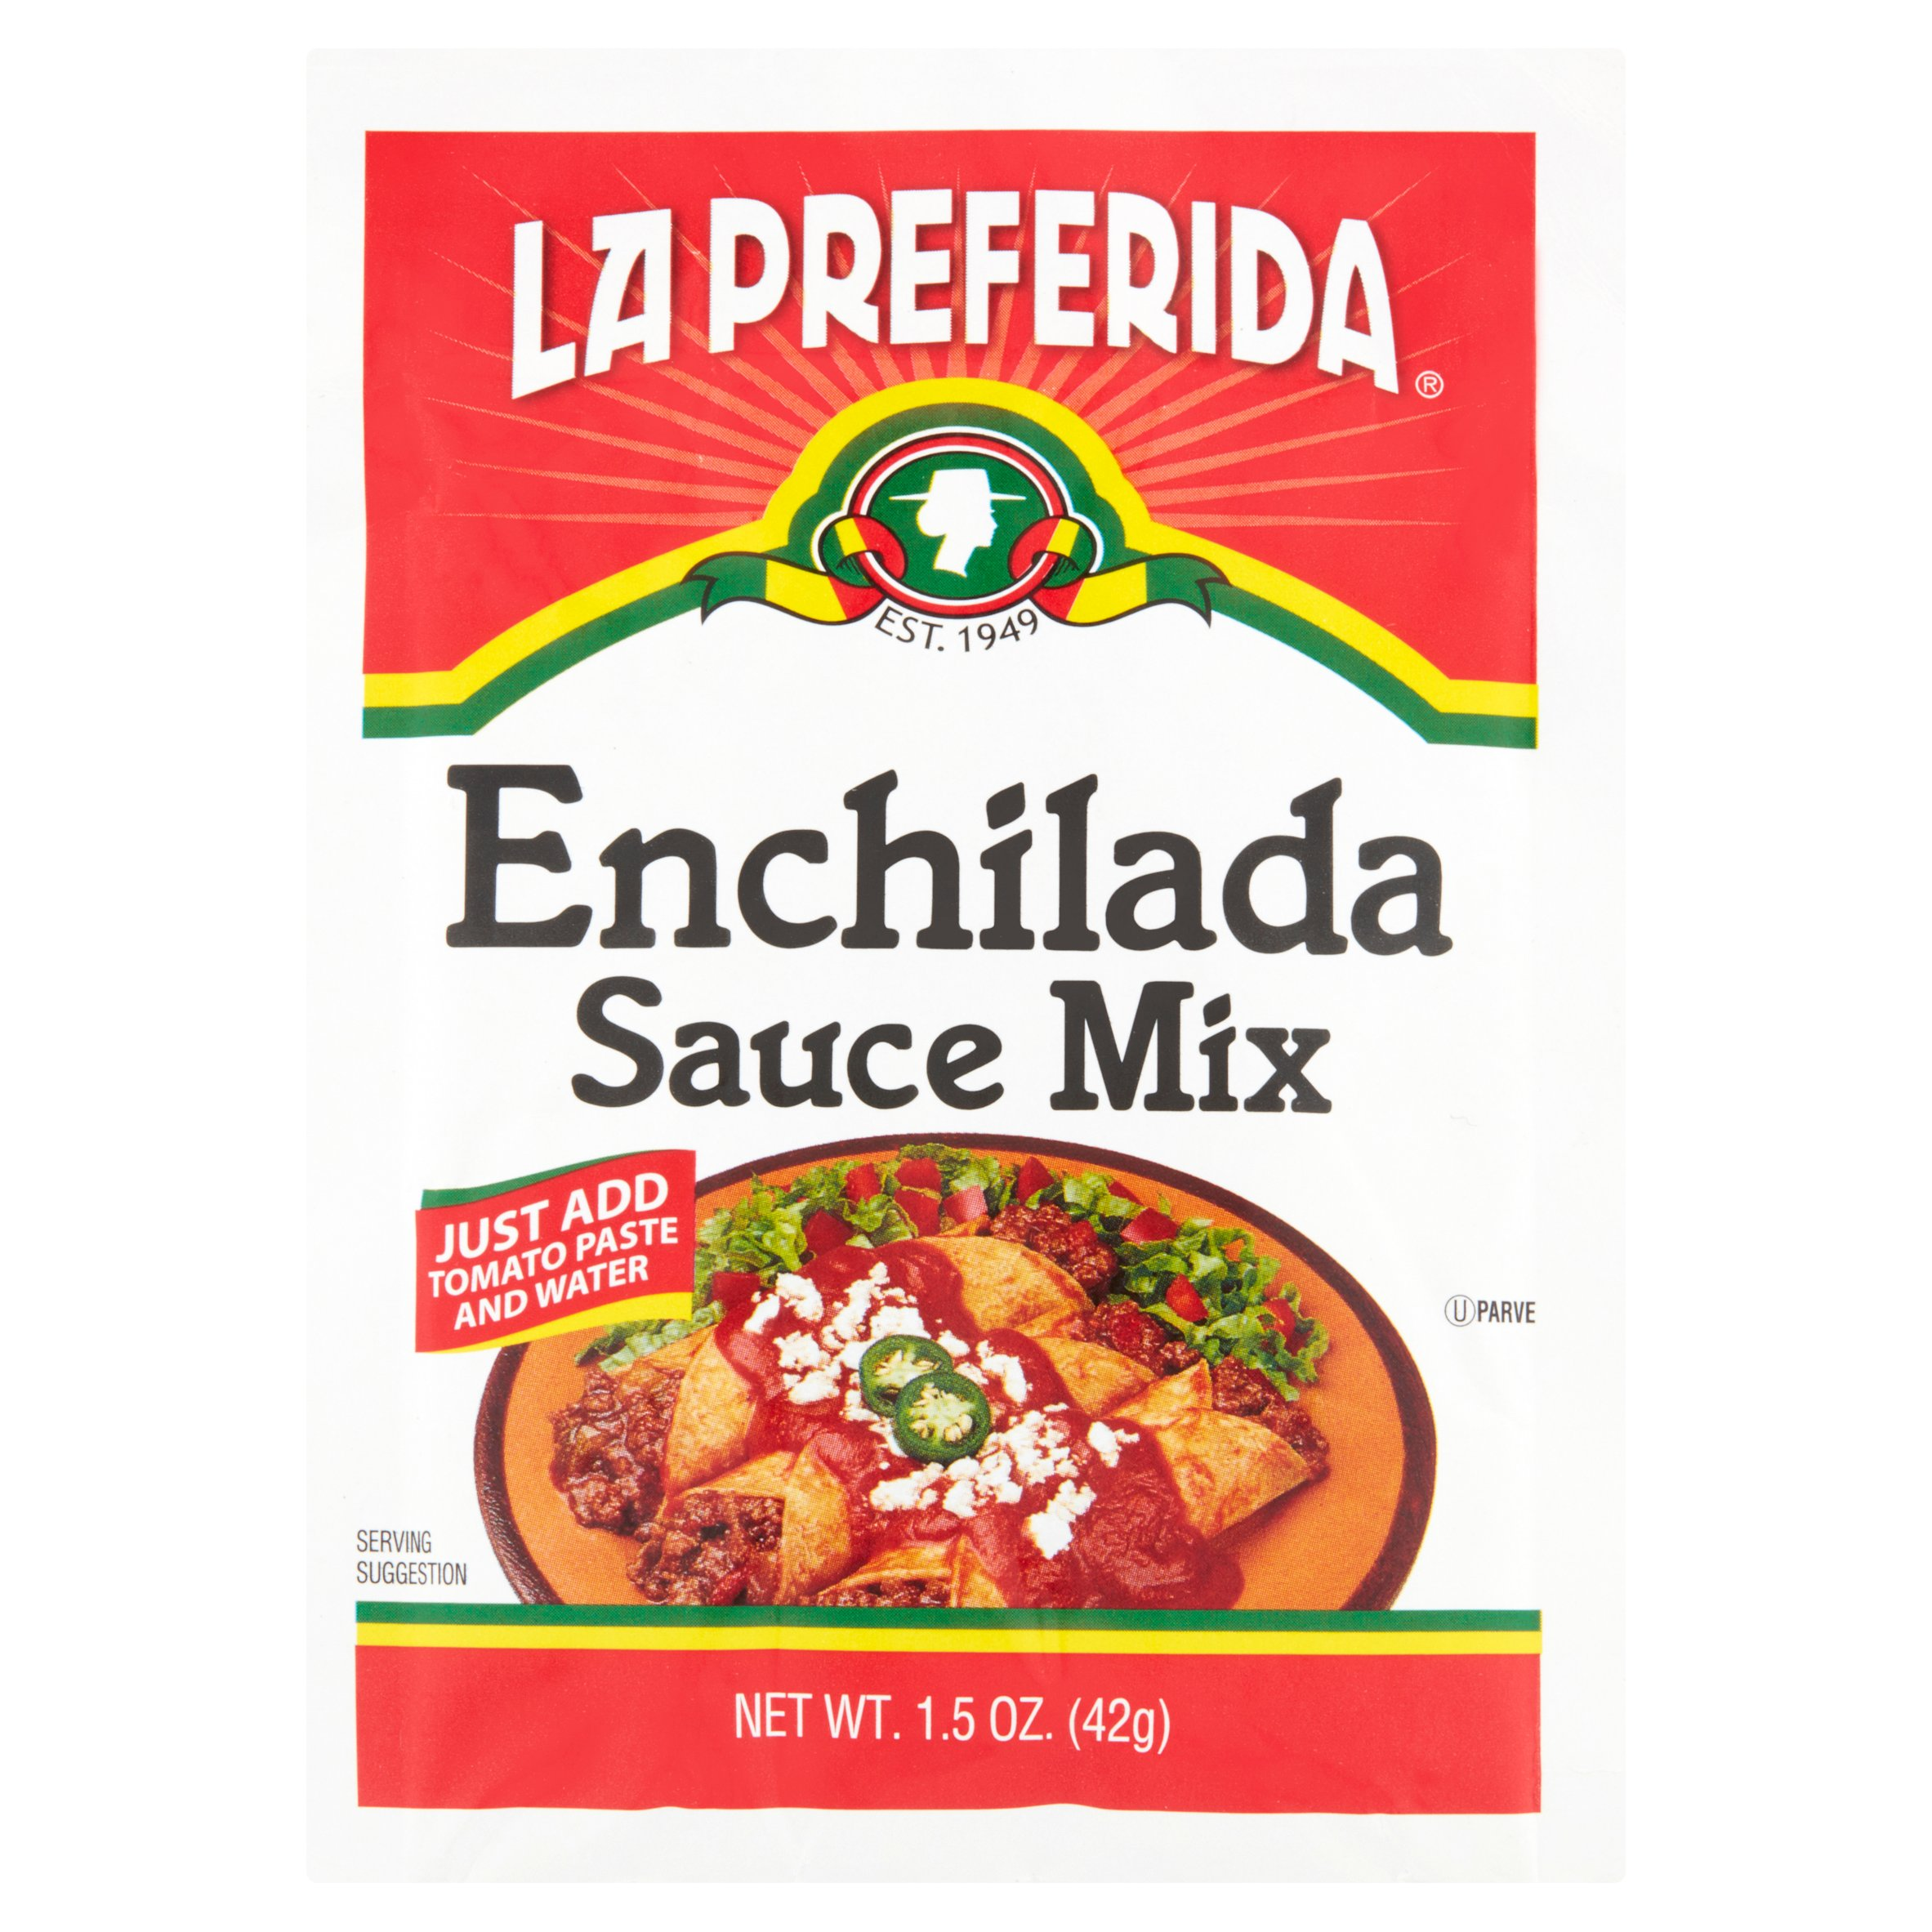 La Preferida Enchilada Sauce Mix, 1.5 oz